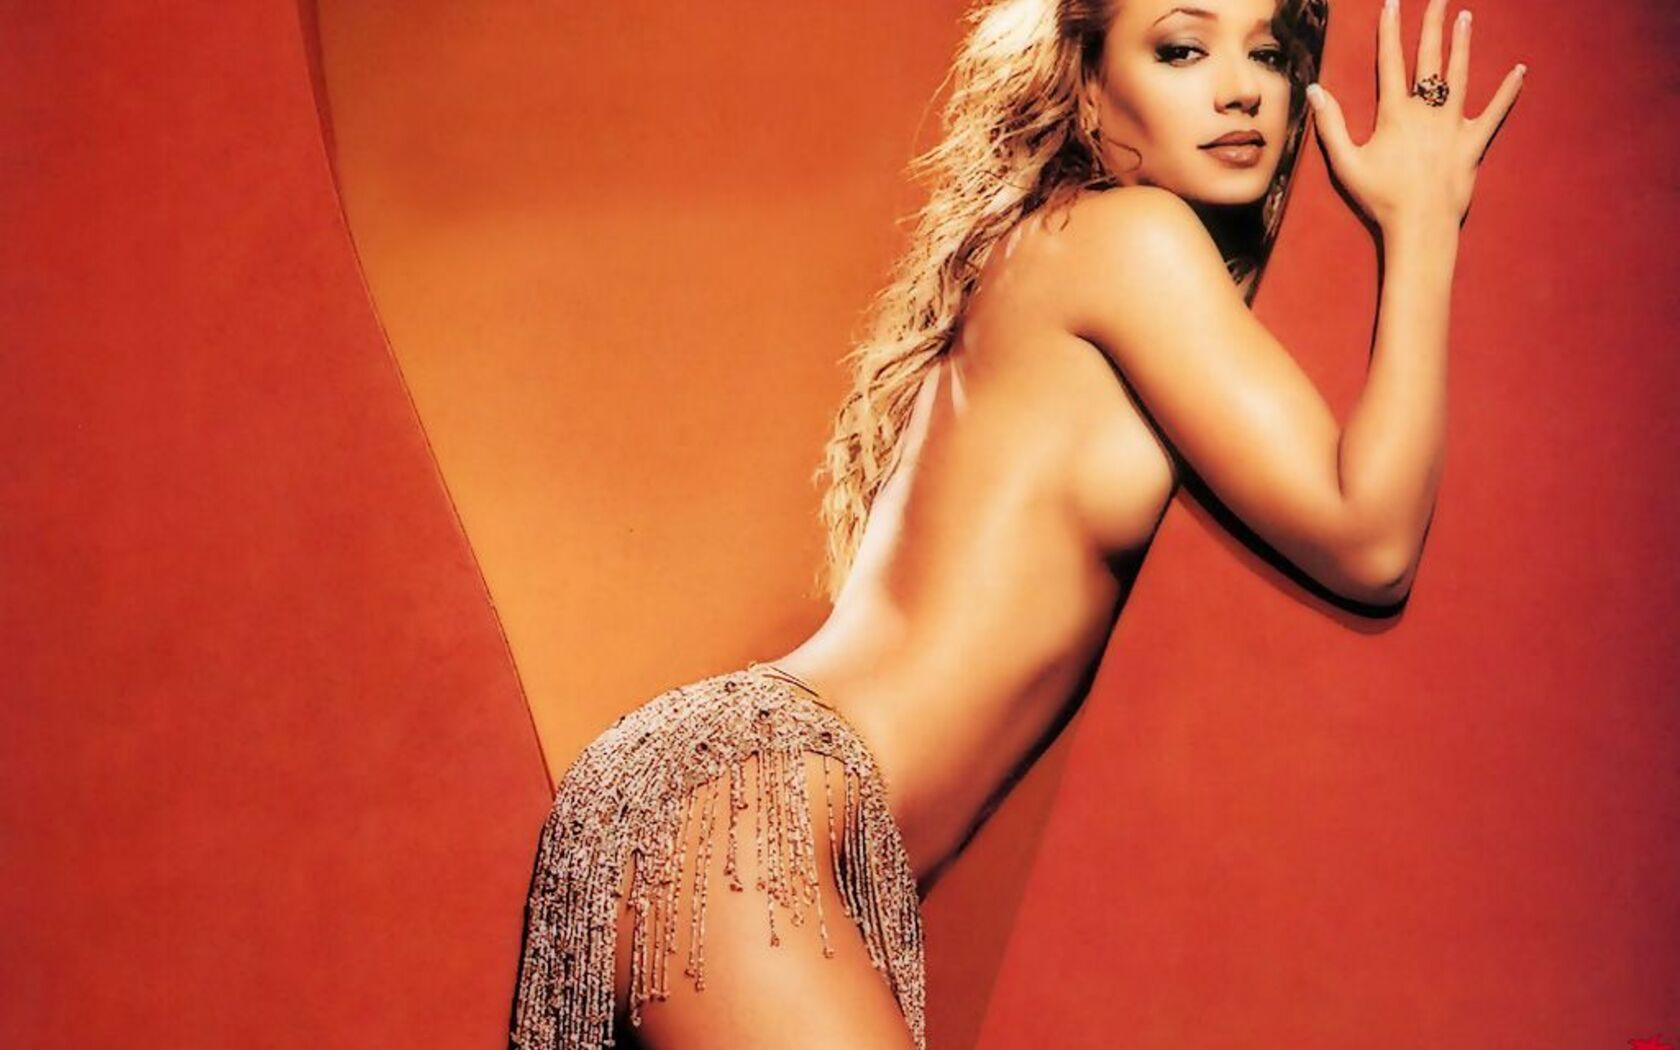 sexy-photos-of-leah-remini-symtoms-of-a-sliping-tranny